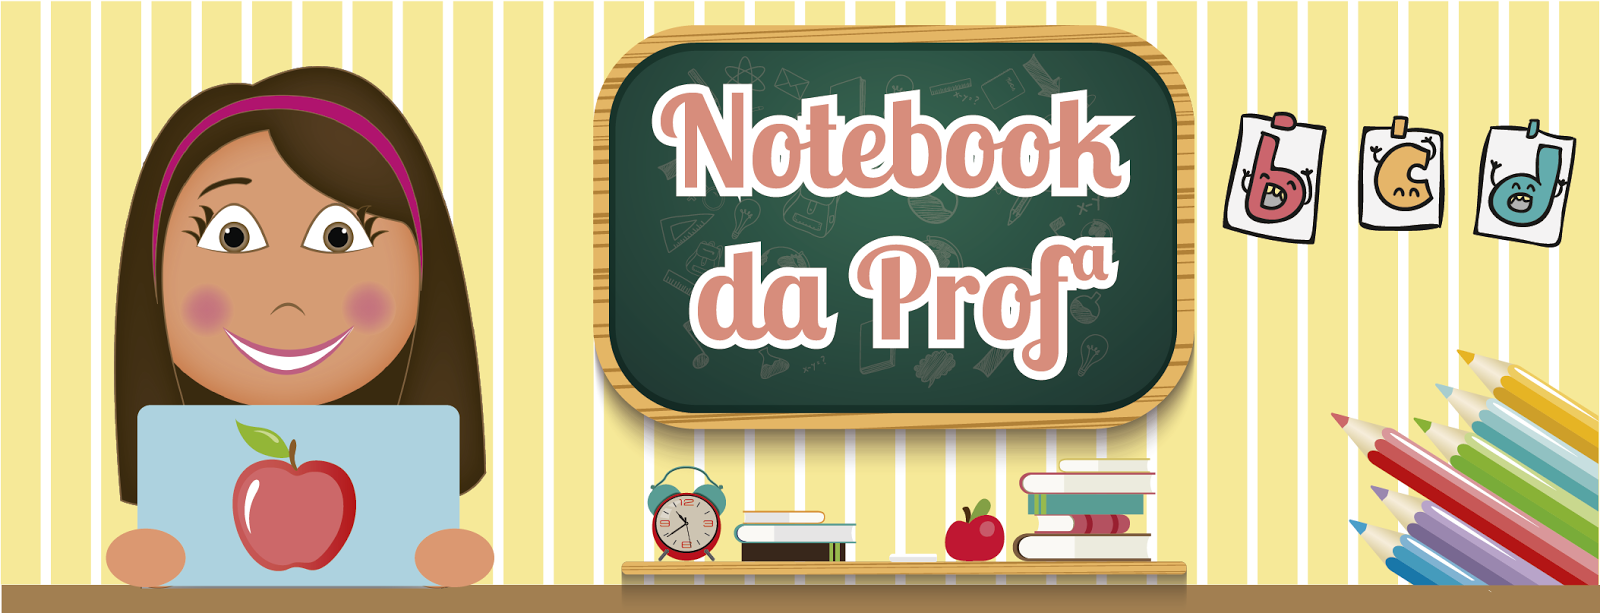 Notebook da Profª